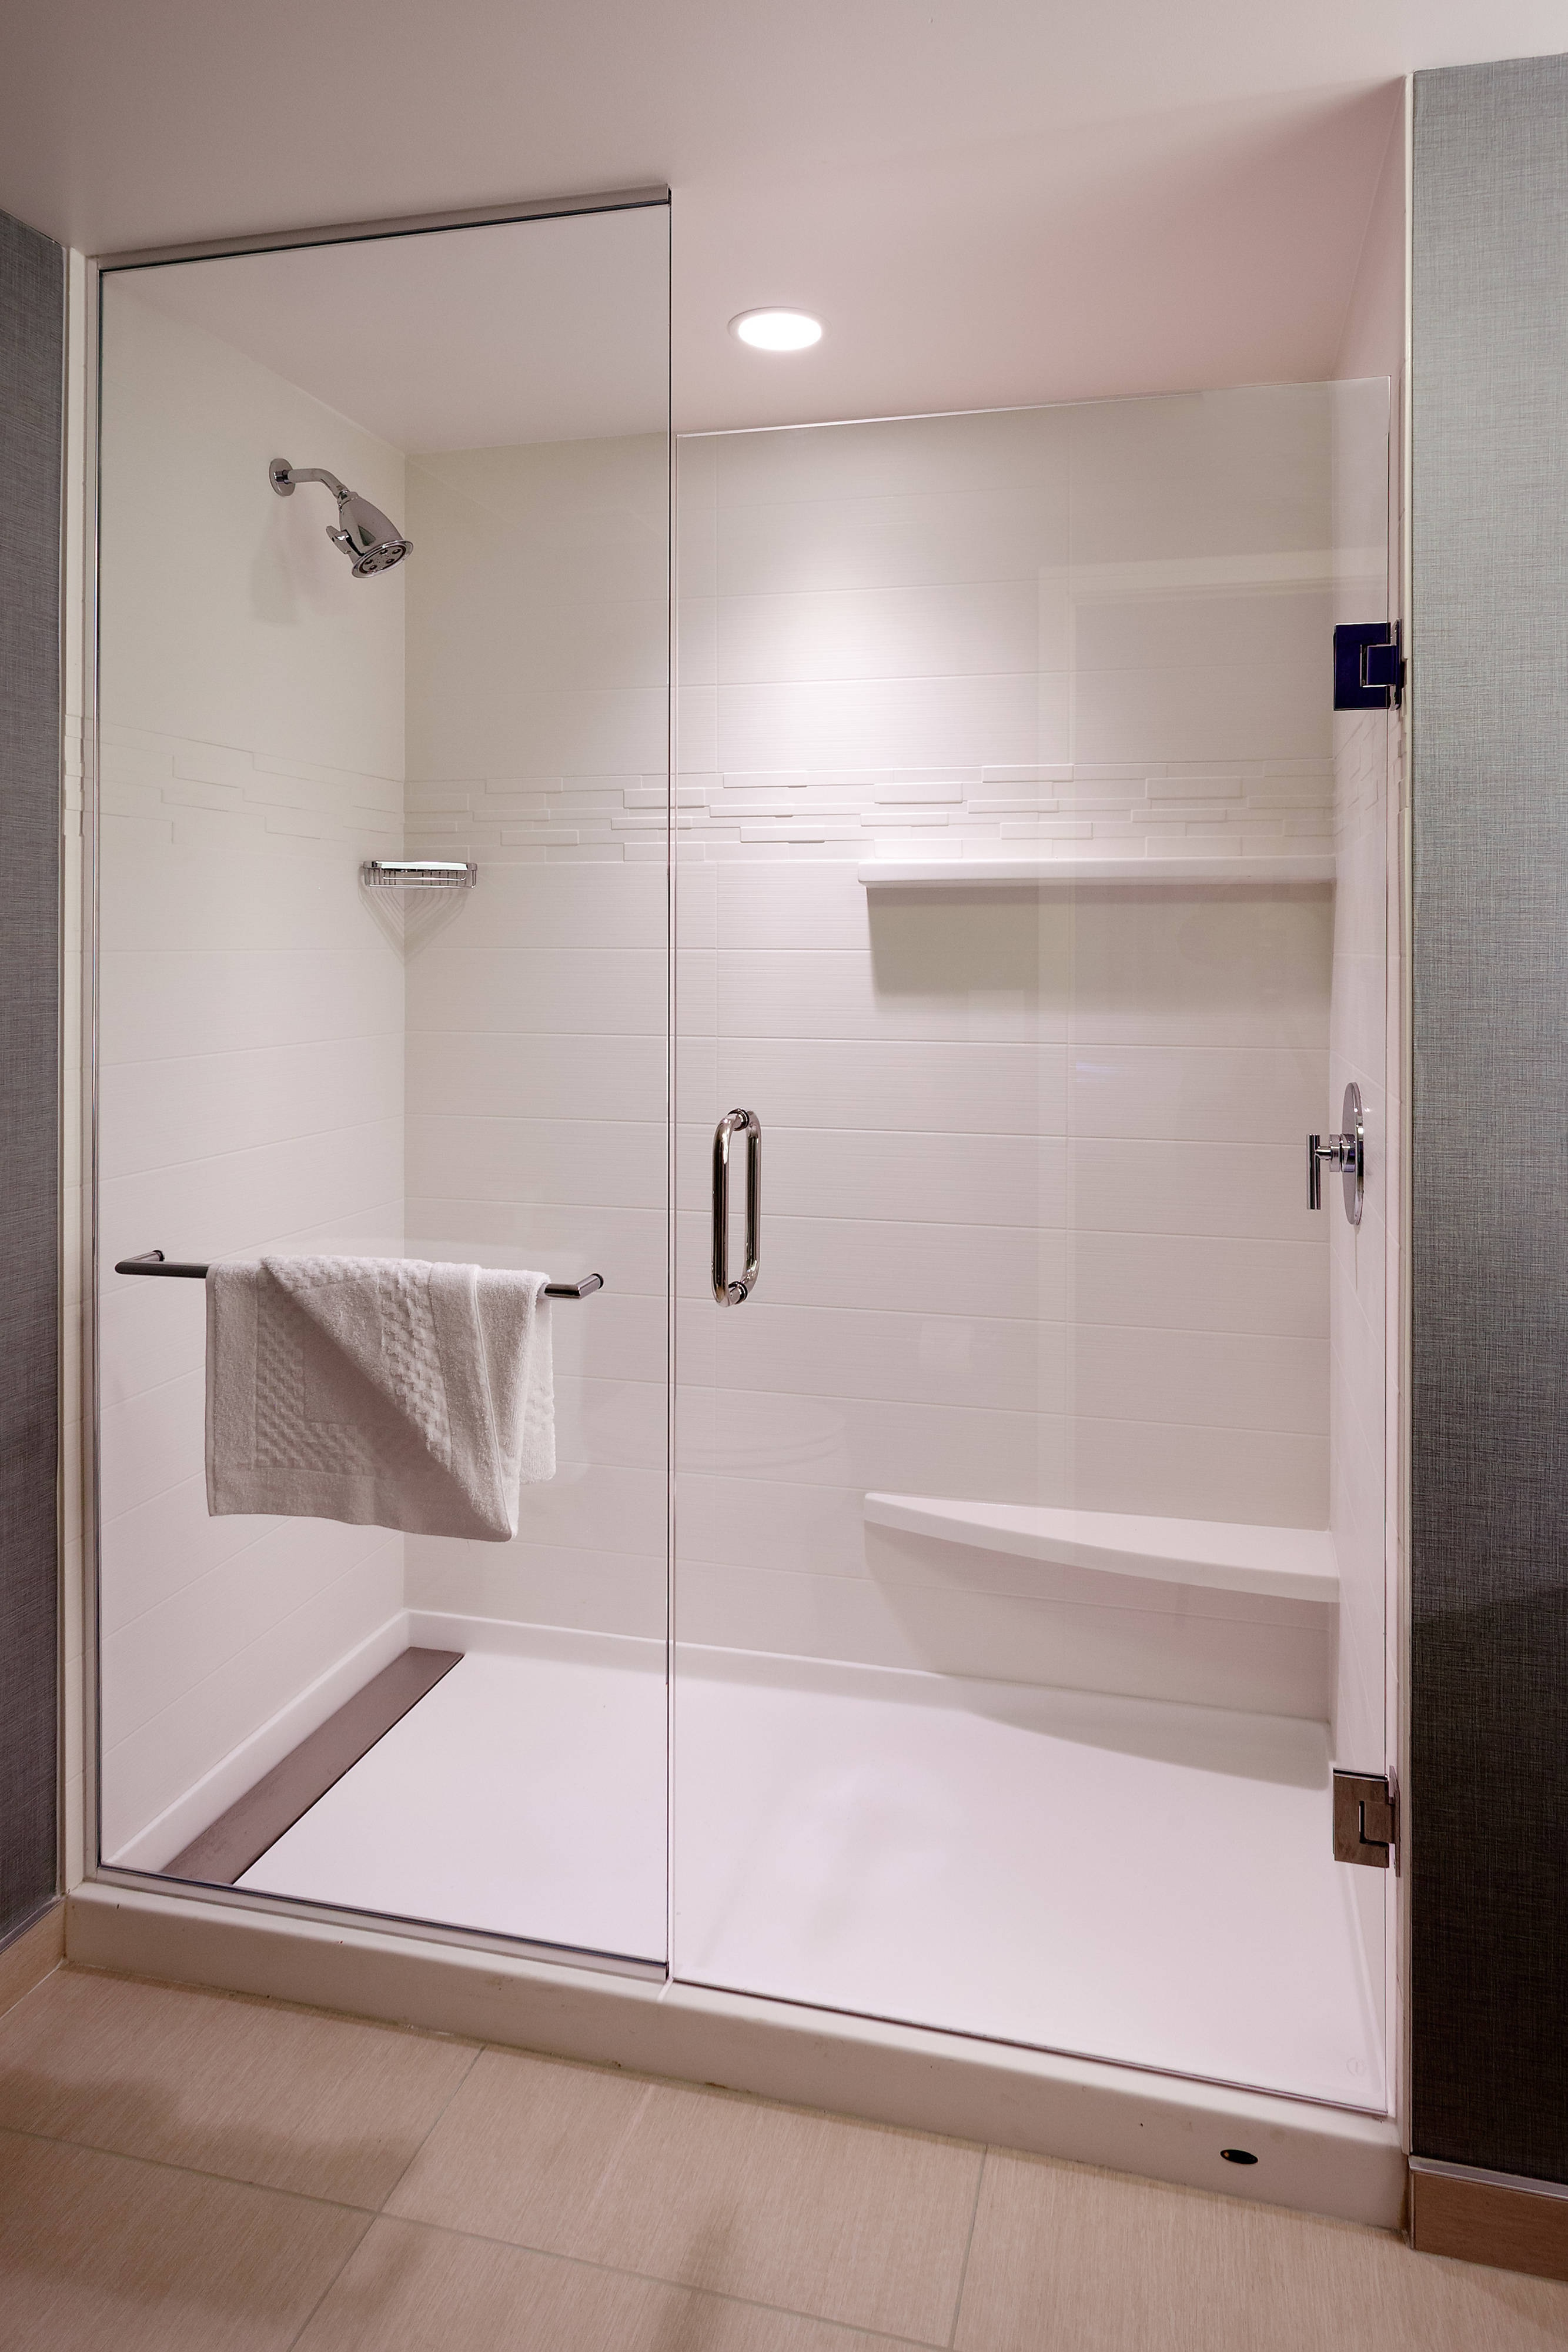 Suite Bathroom - Shower